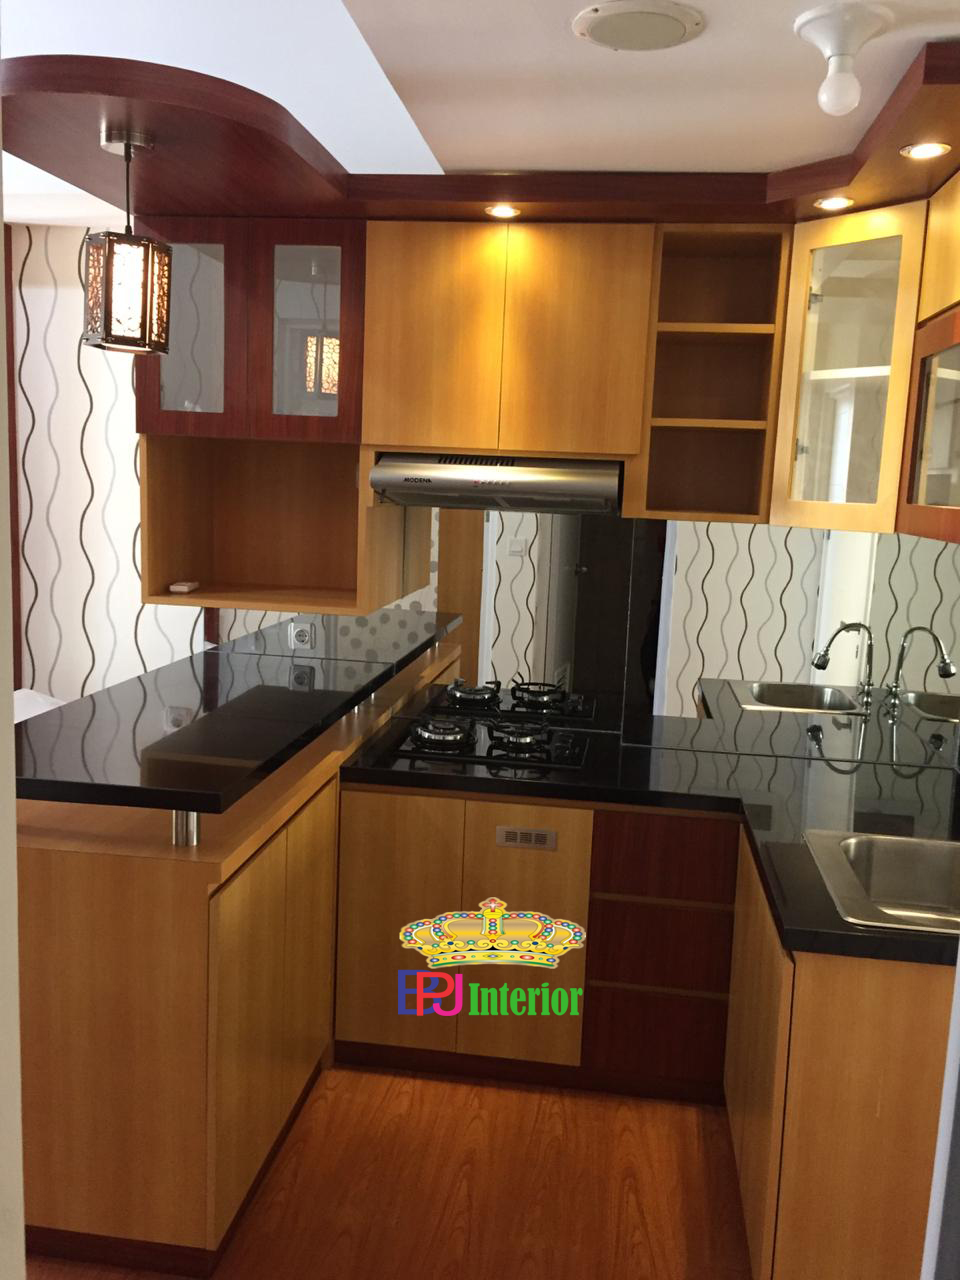 Design Kitchen Set Apartemen Leter U